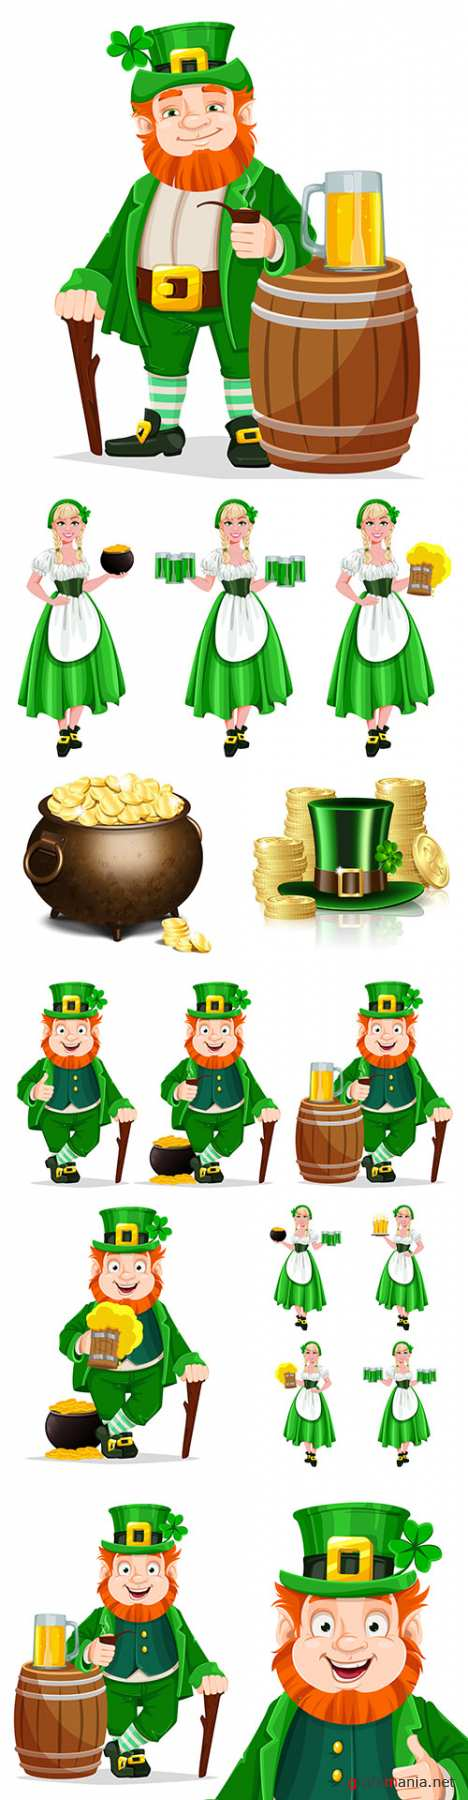 St. Patrick's Day party design vector illustrations 9